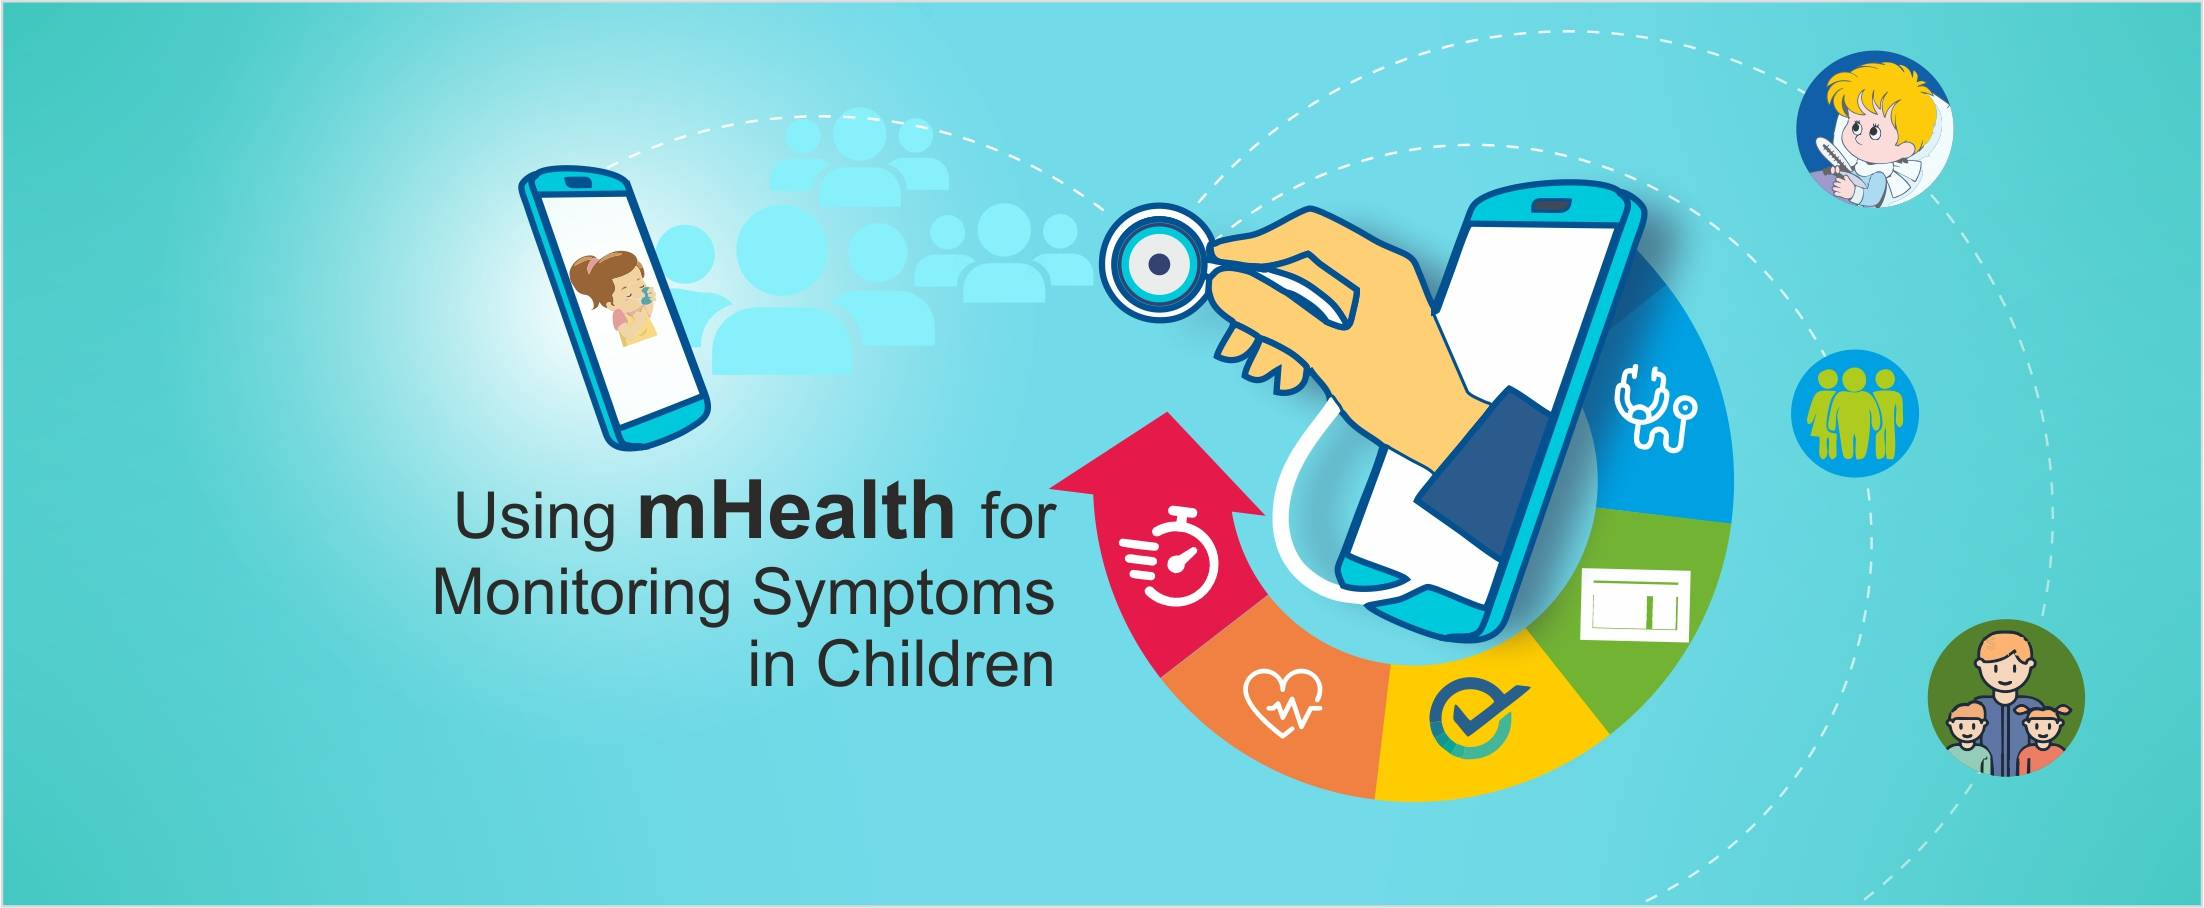 mHealth for Monitoring Symptoms in Children